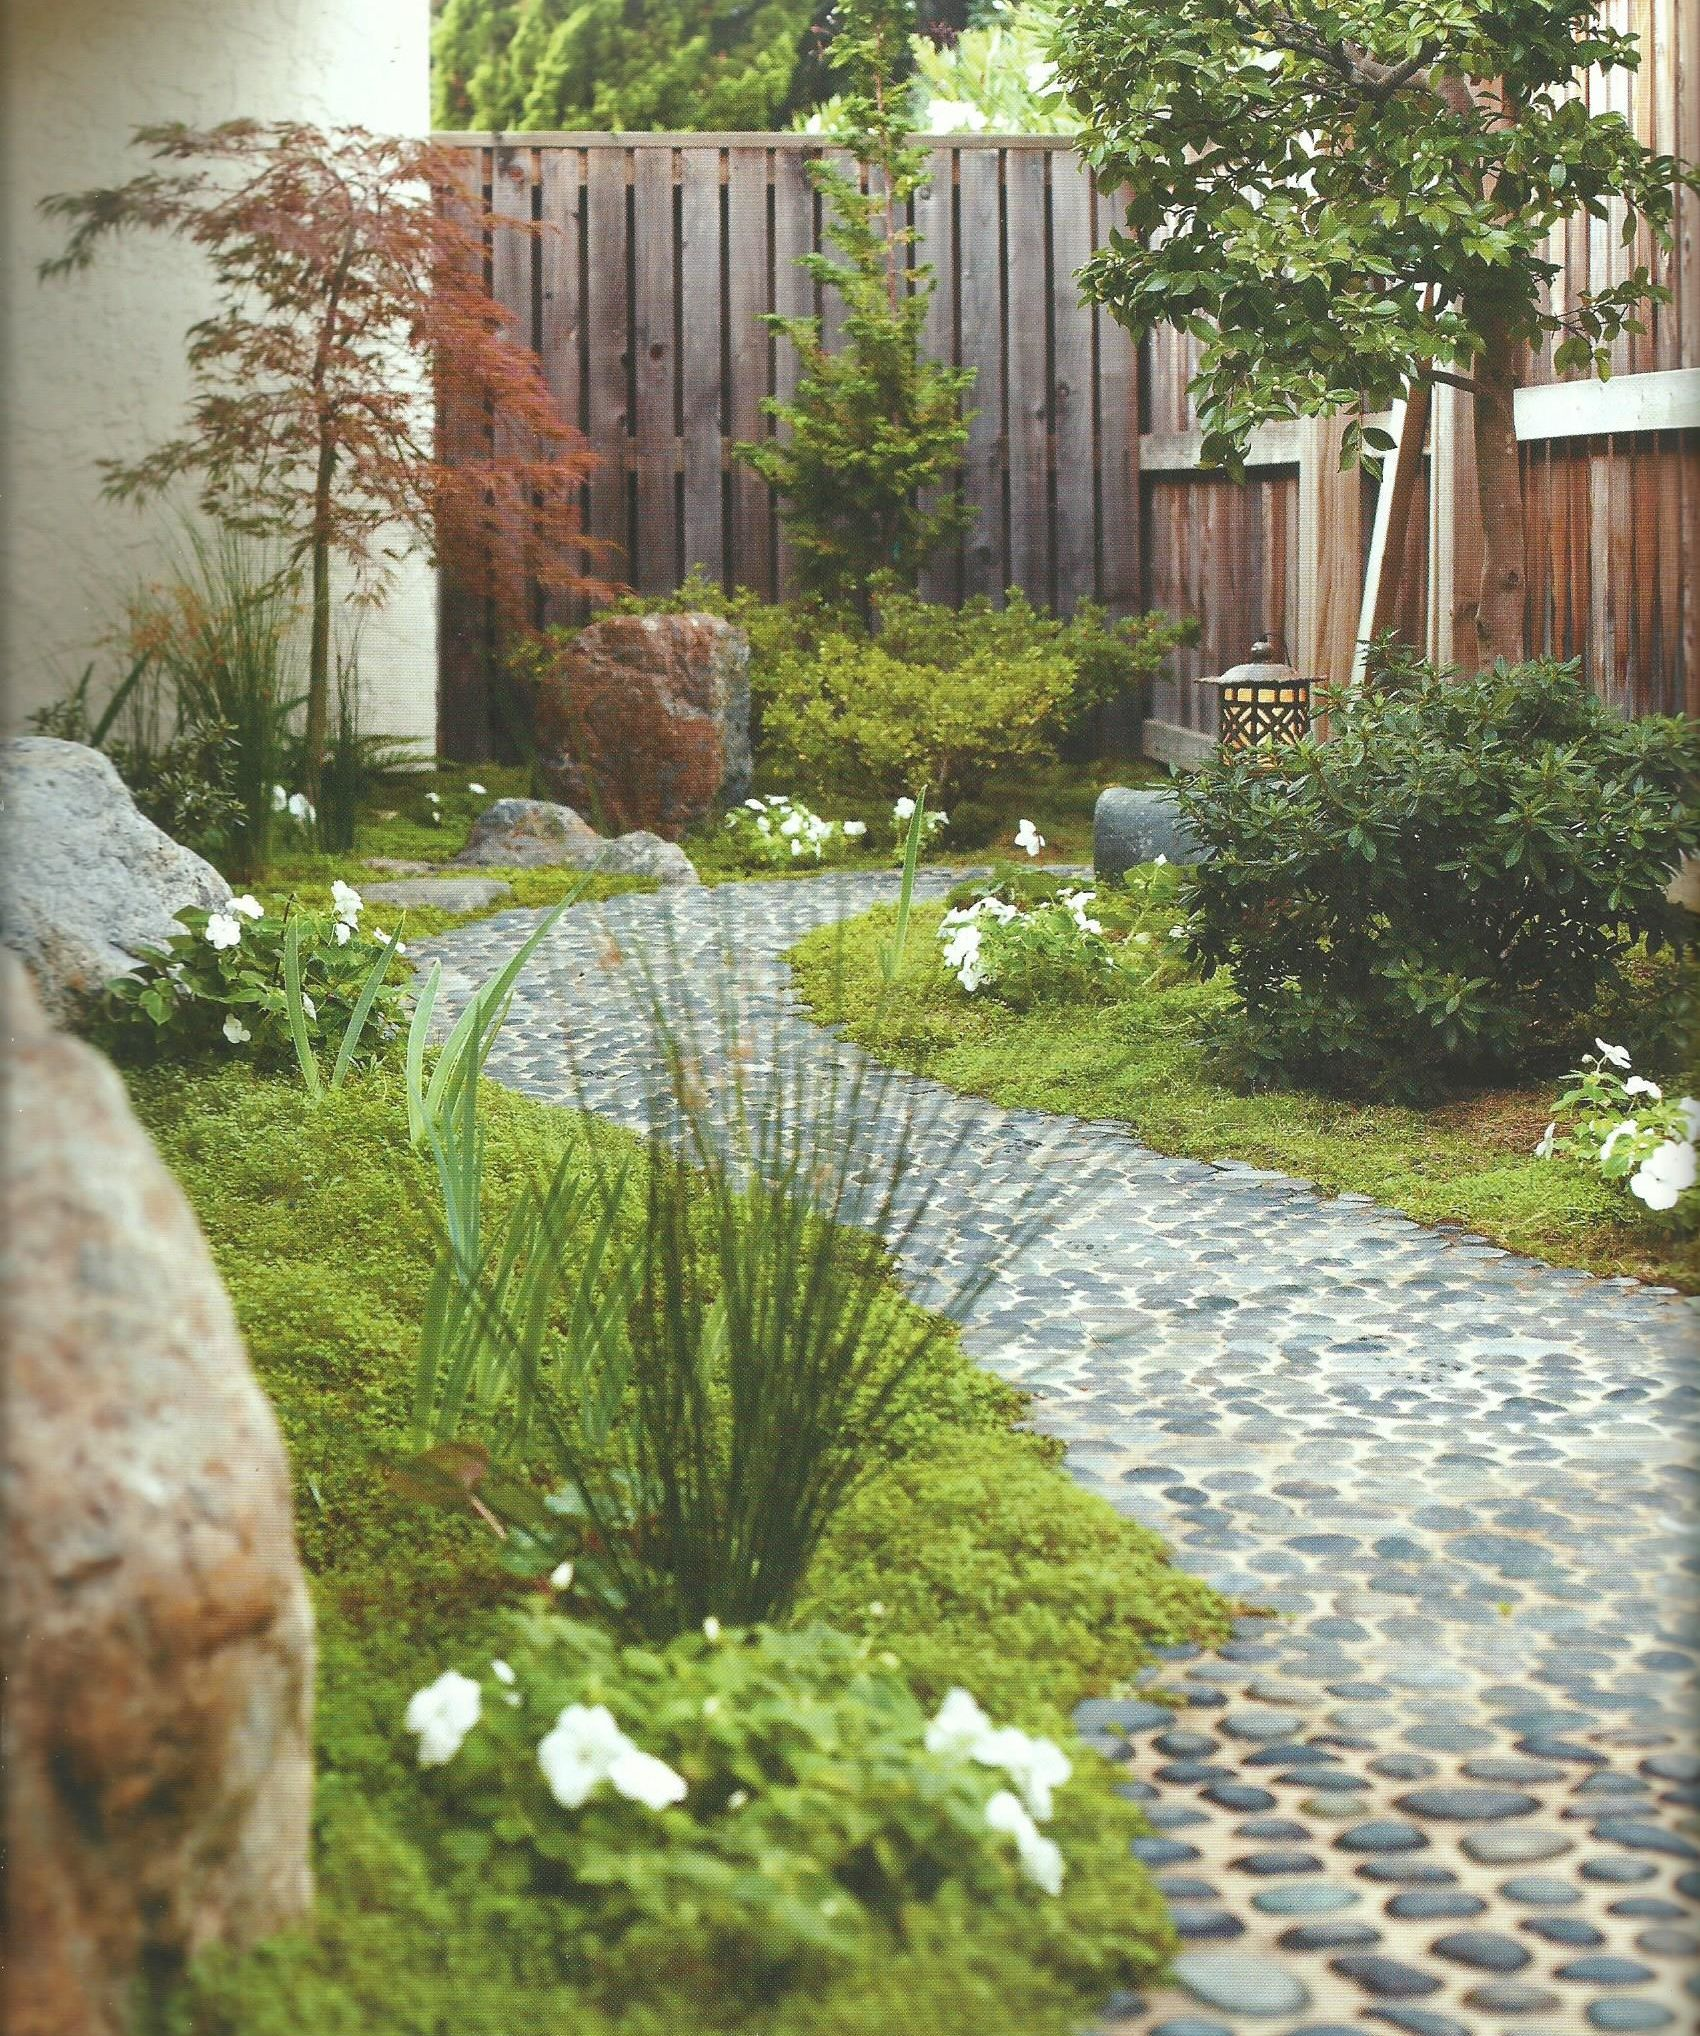 Garden Path Made Of Smooth, Flat River Rocks Set In